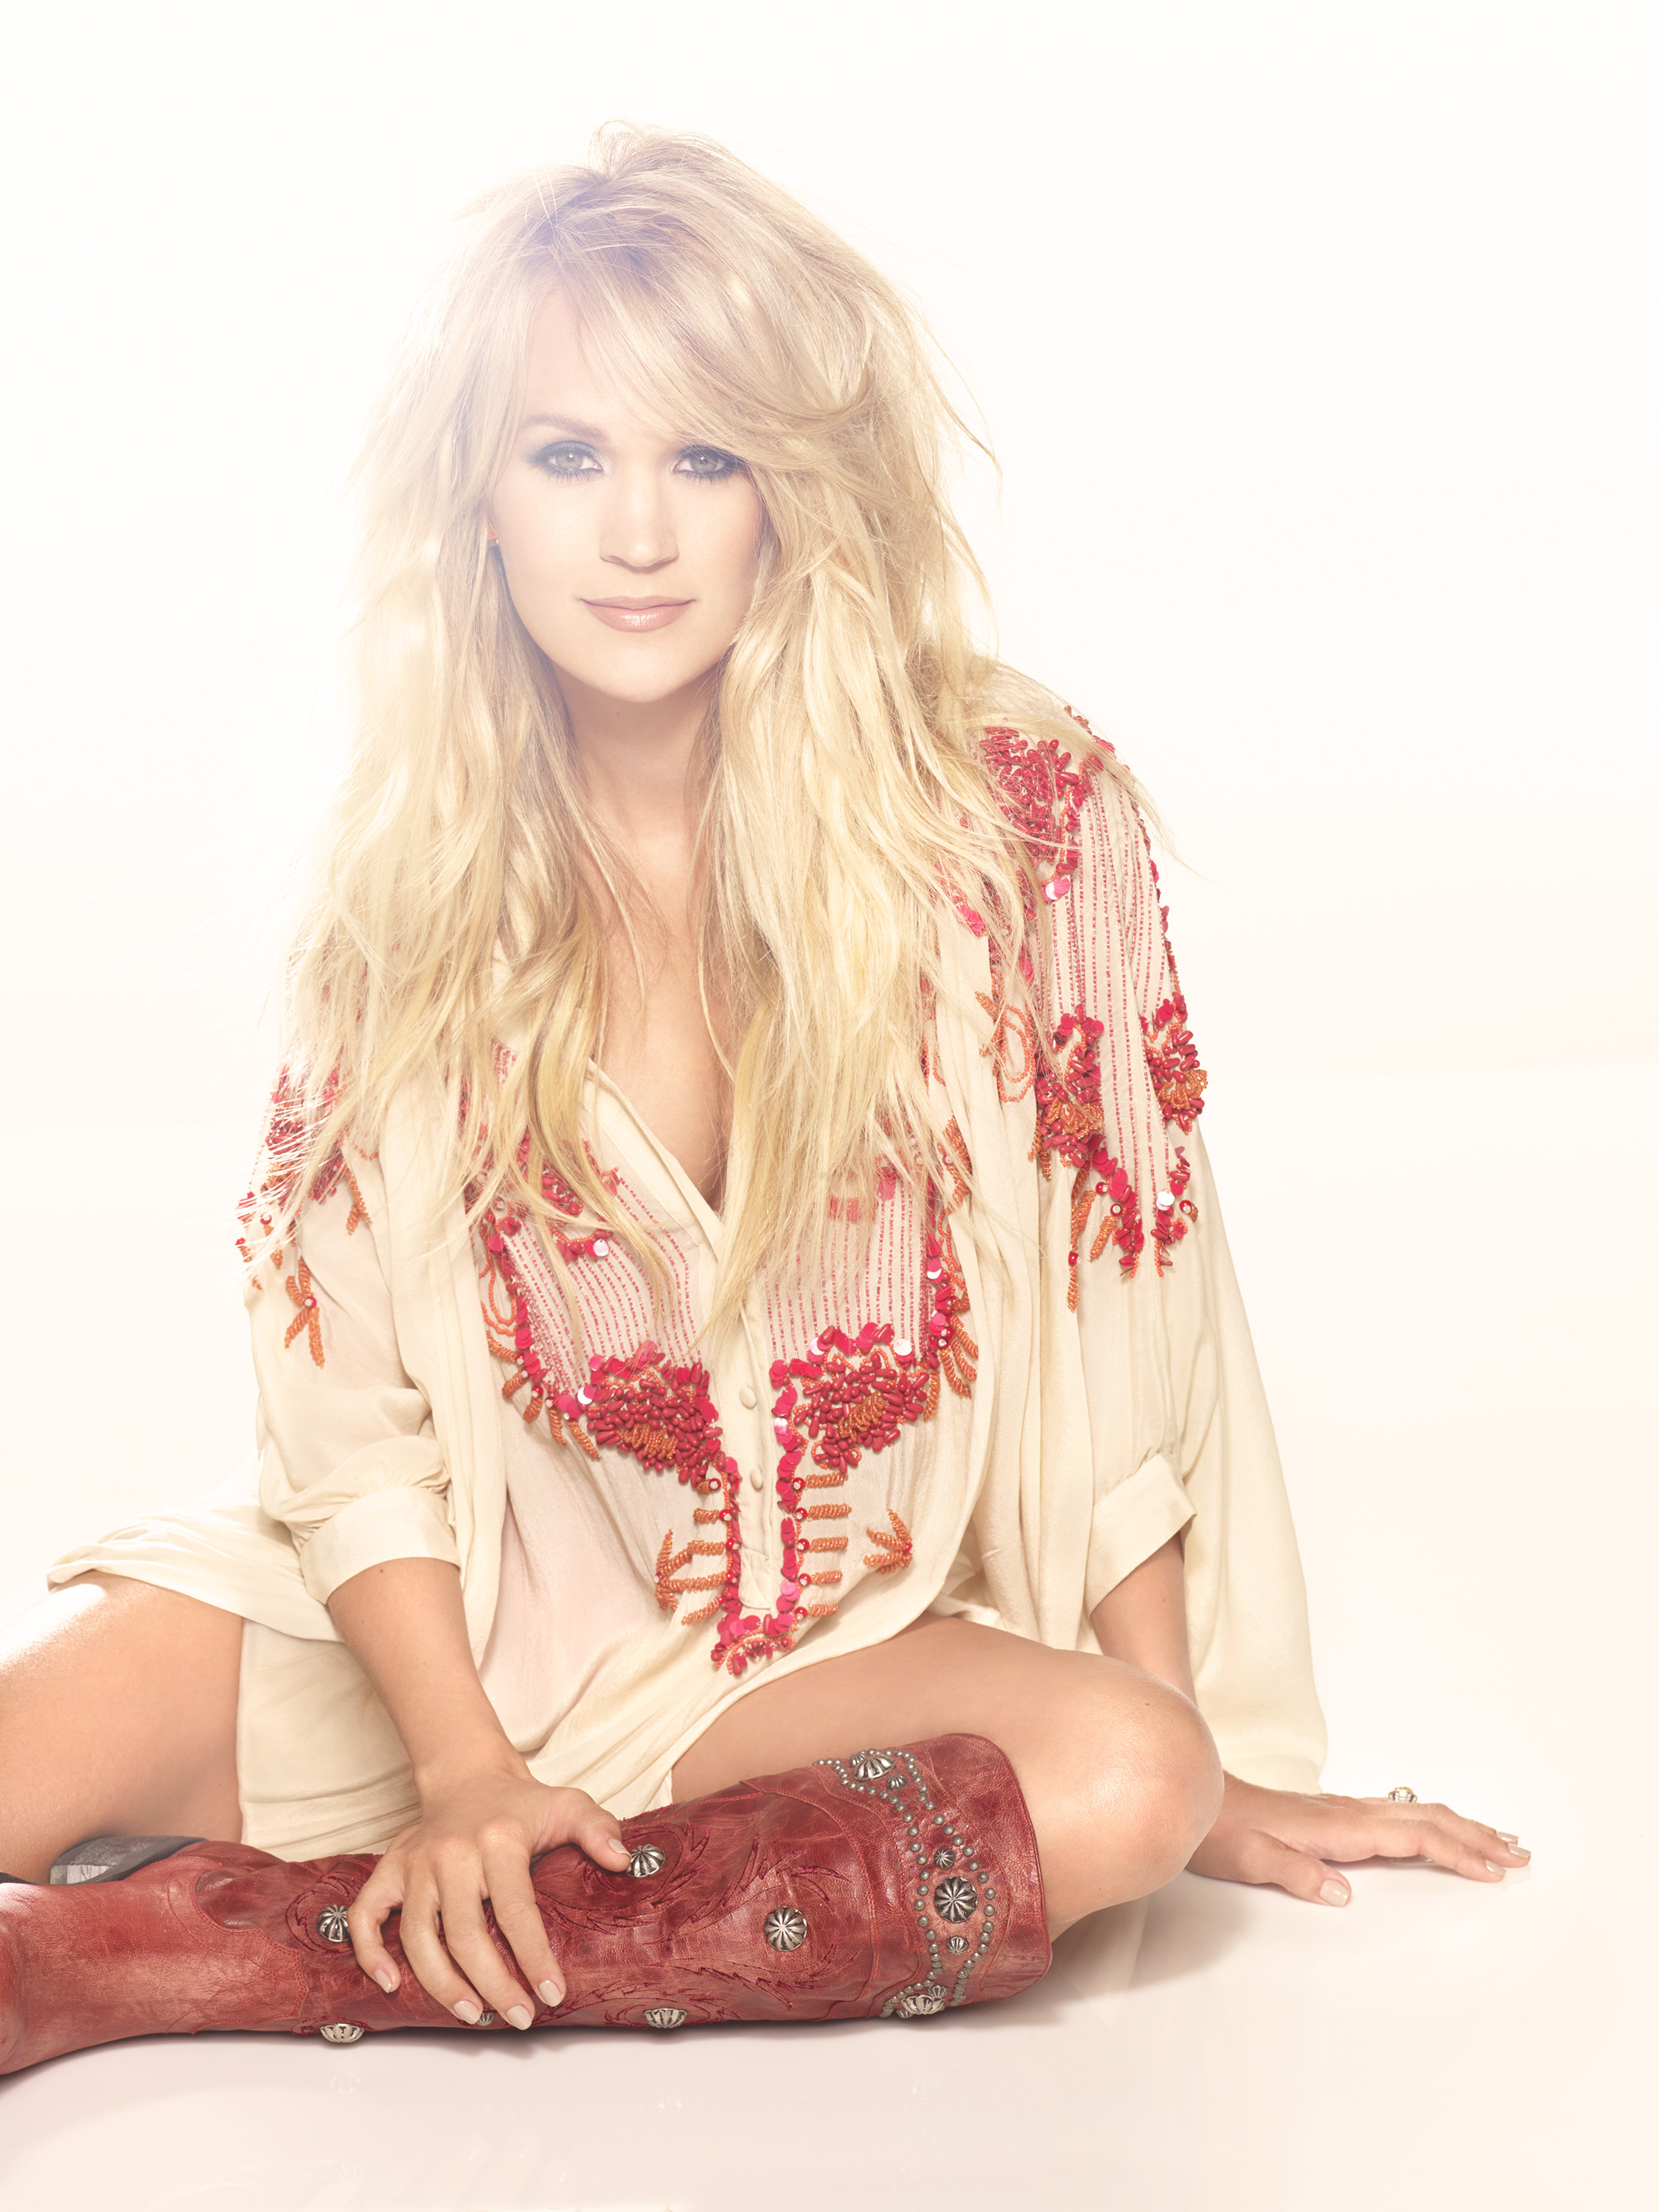 Latest In New Video Series from Carnival Featuring Country Music Superstar Carrie Underwood Highlights Military Family Benefiting from Operation Homefront